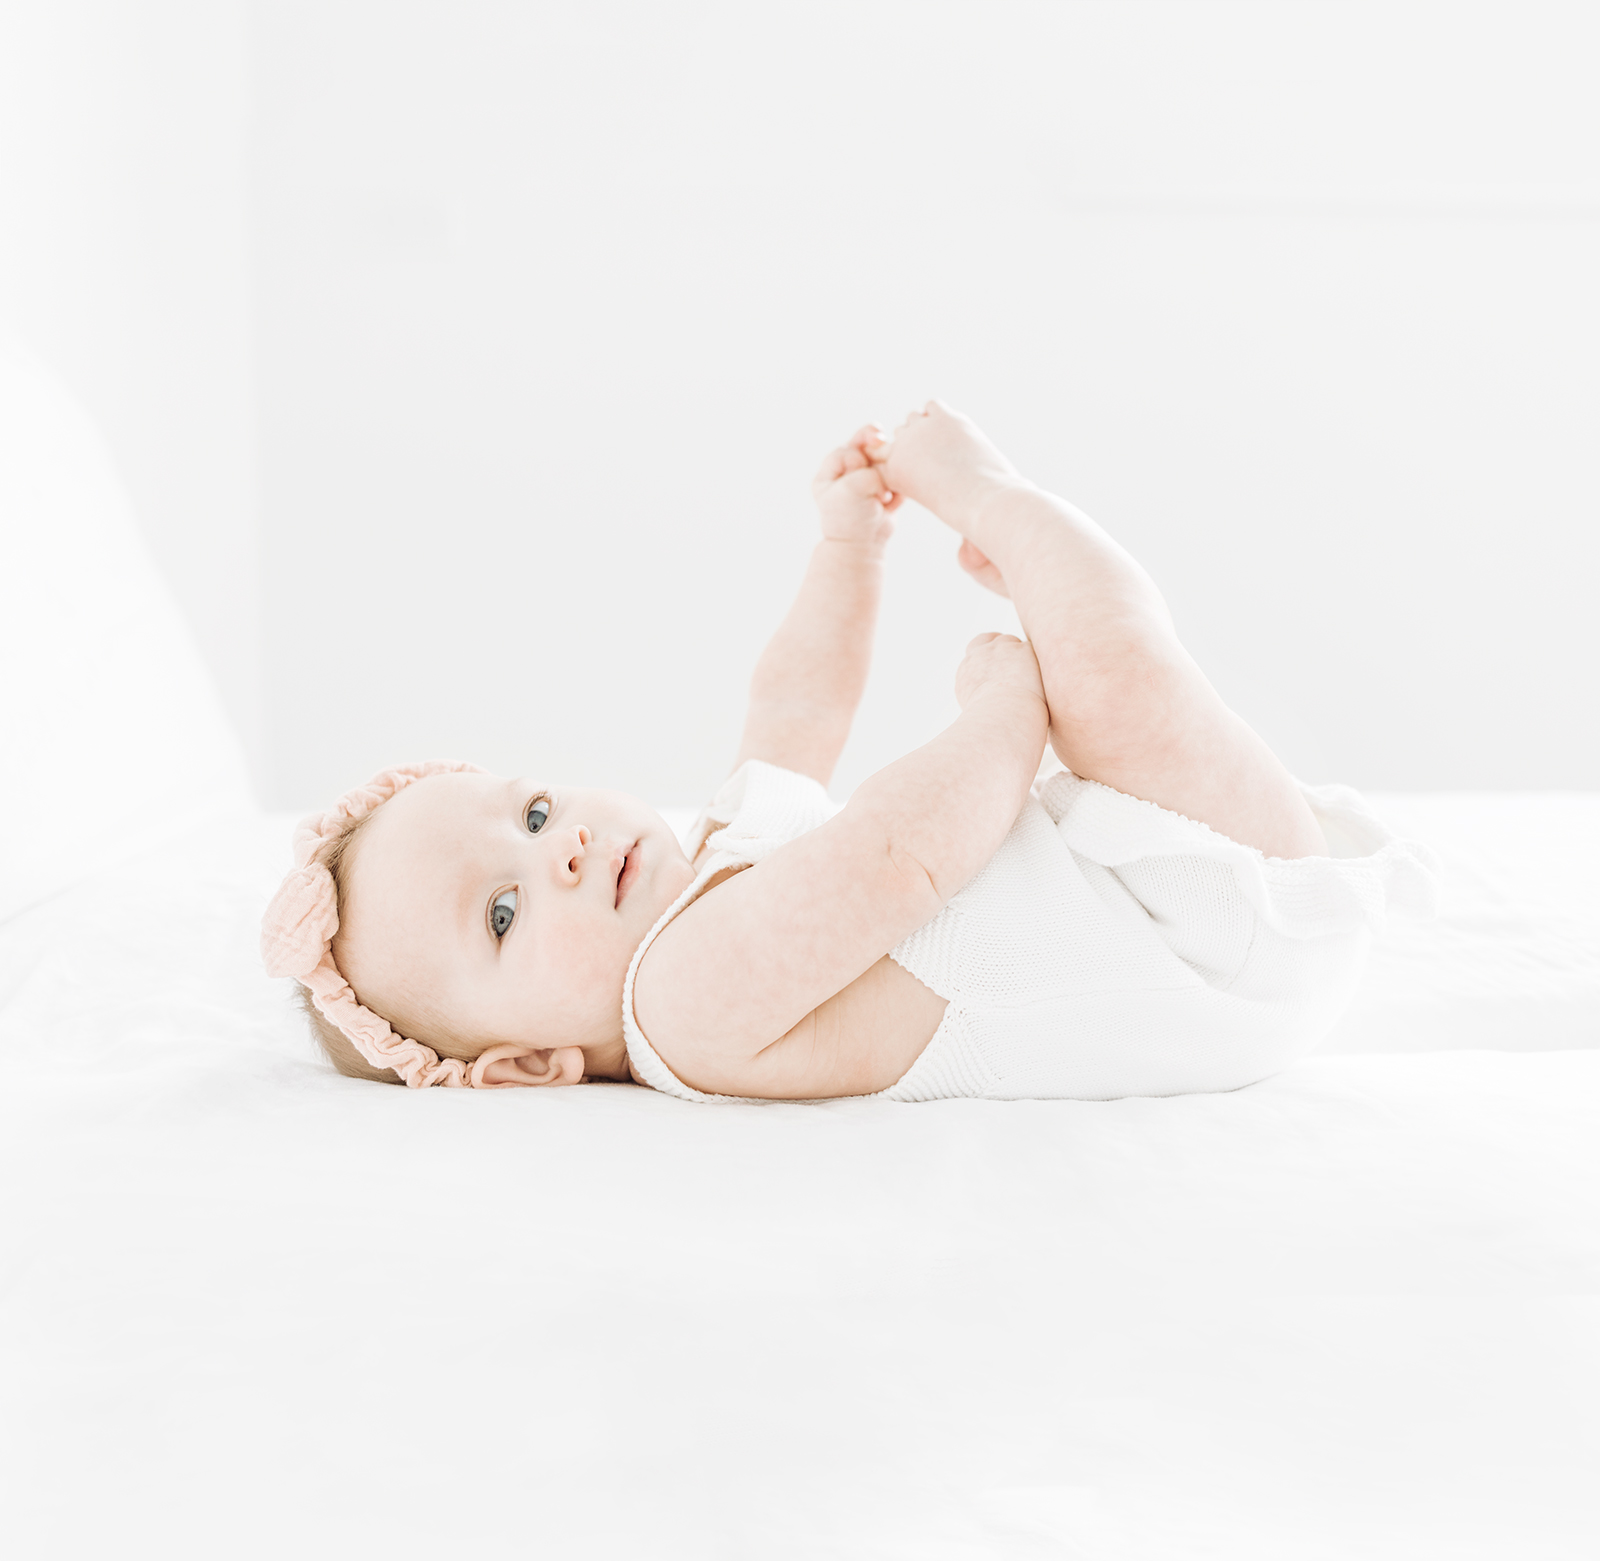 affordable baby photographer kansas